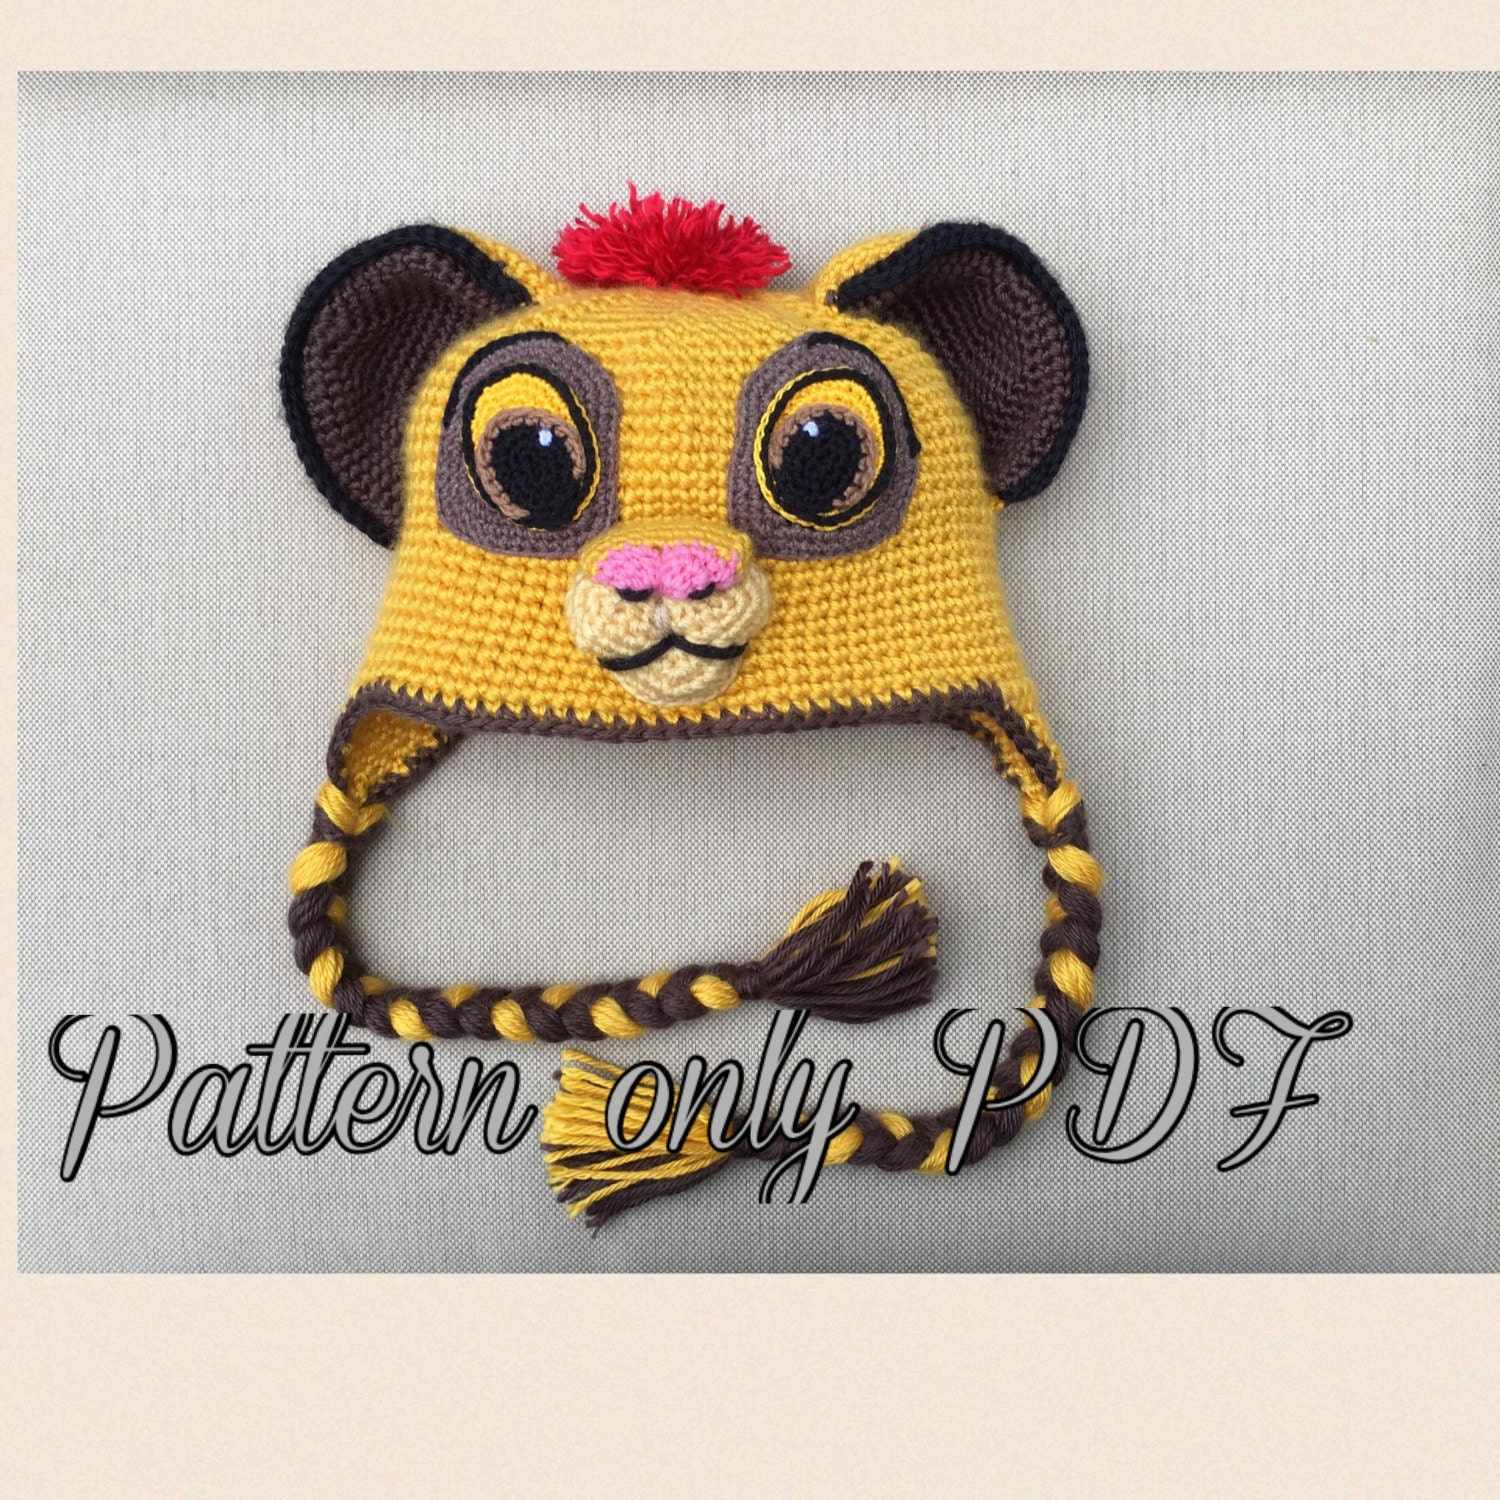 Lion hat crochet pattern pdf from ambercraftstore on etsy studio lion hat crochet pattern pdf bankloansurffo Image collections